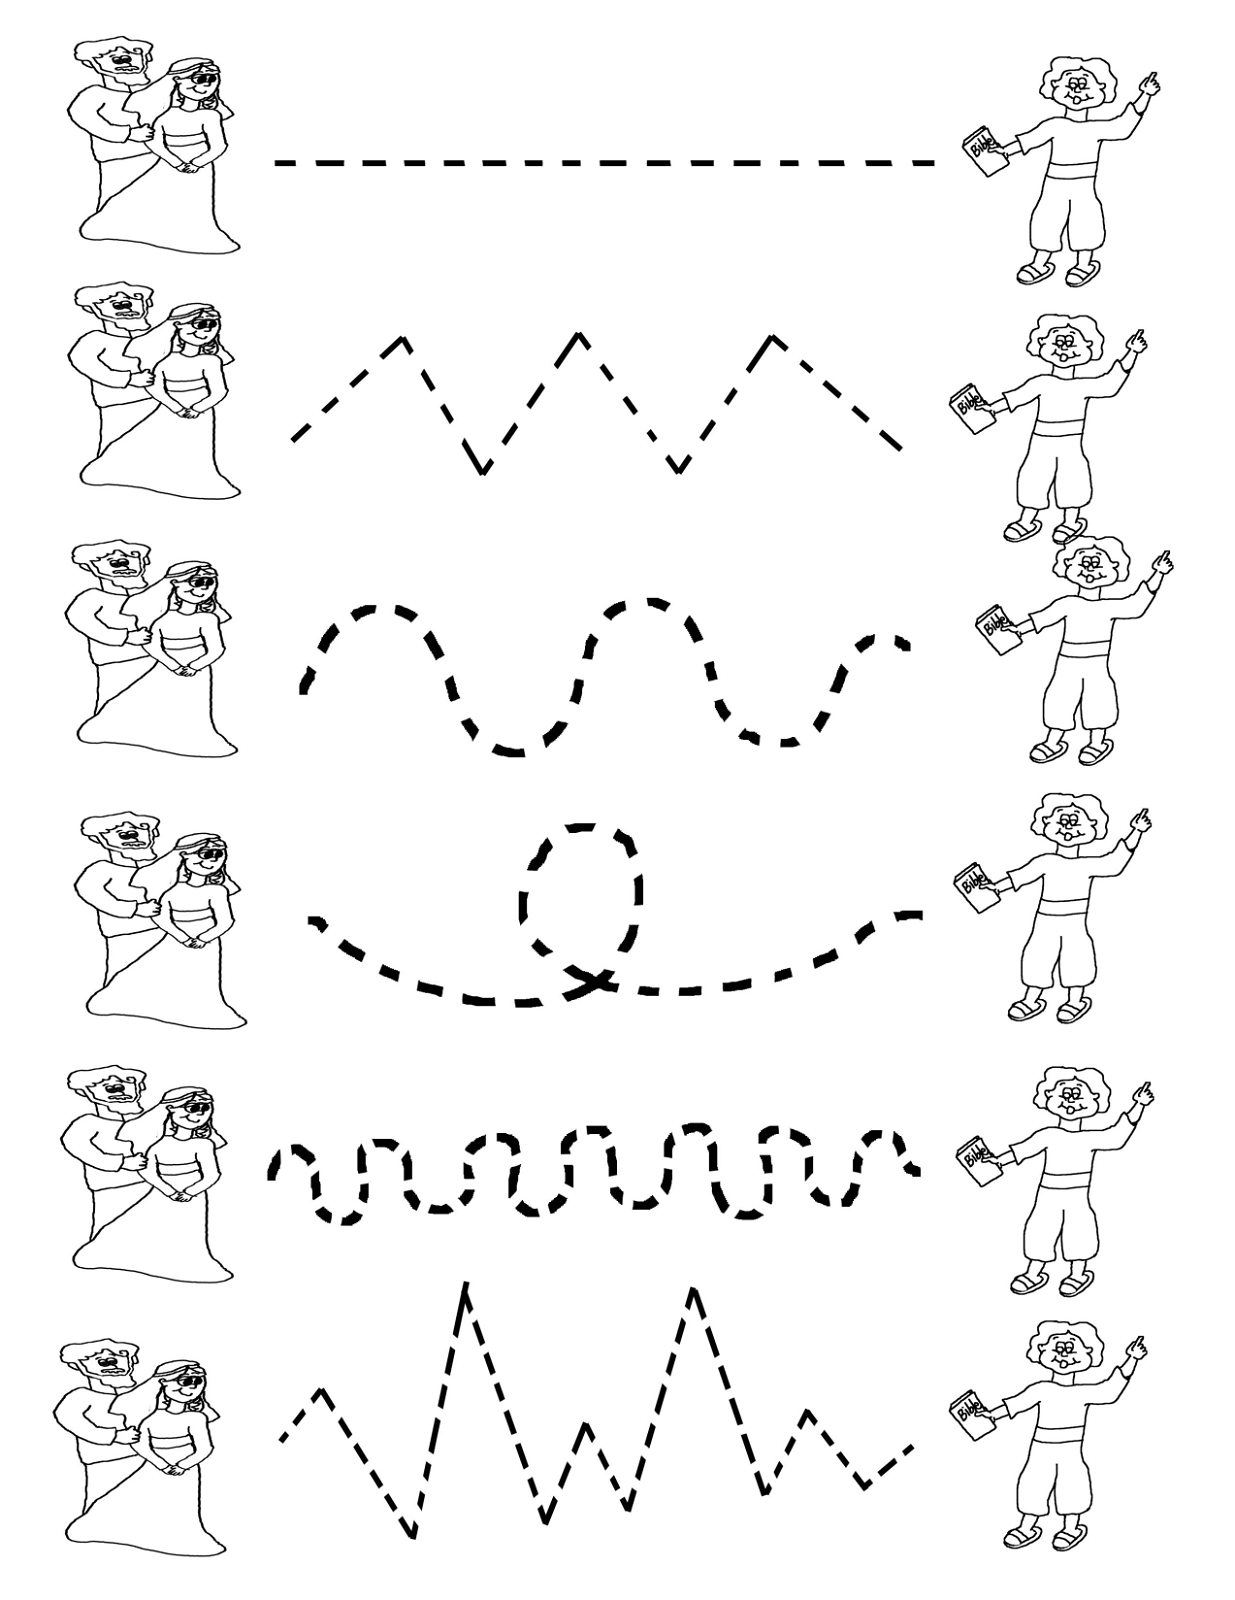 traceable alphabet templates - tracing activities for preschool kids activity shelter